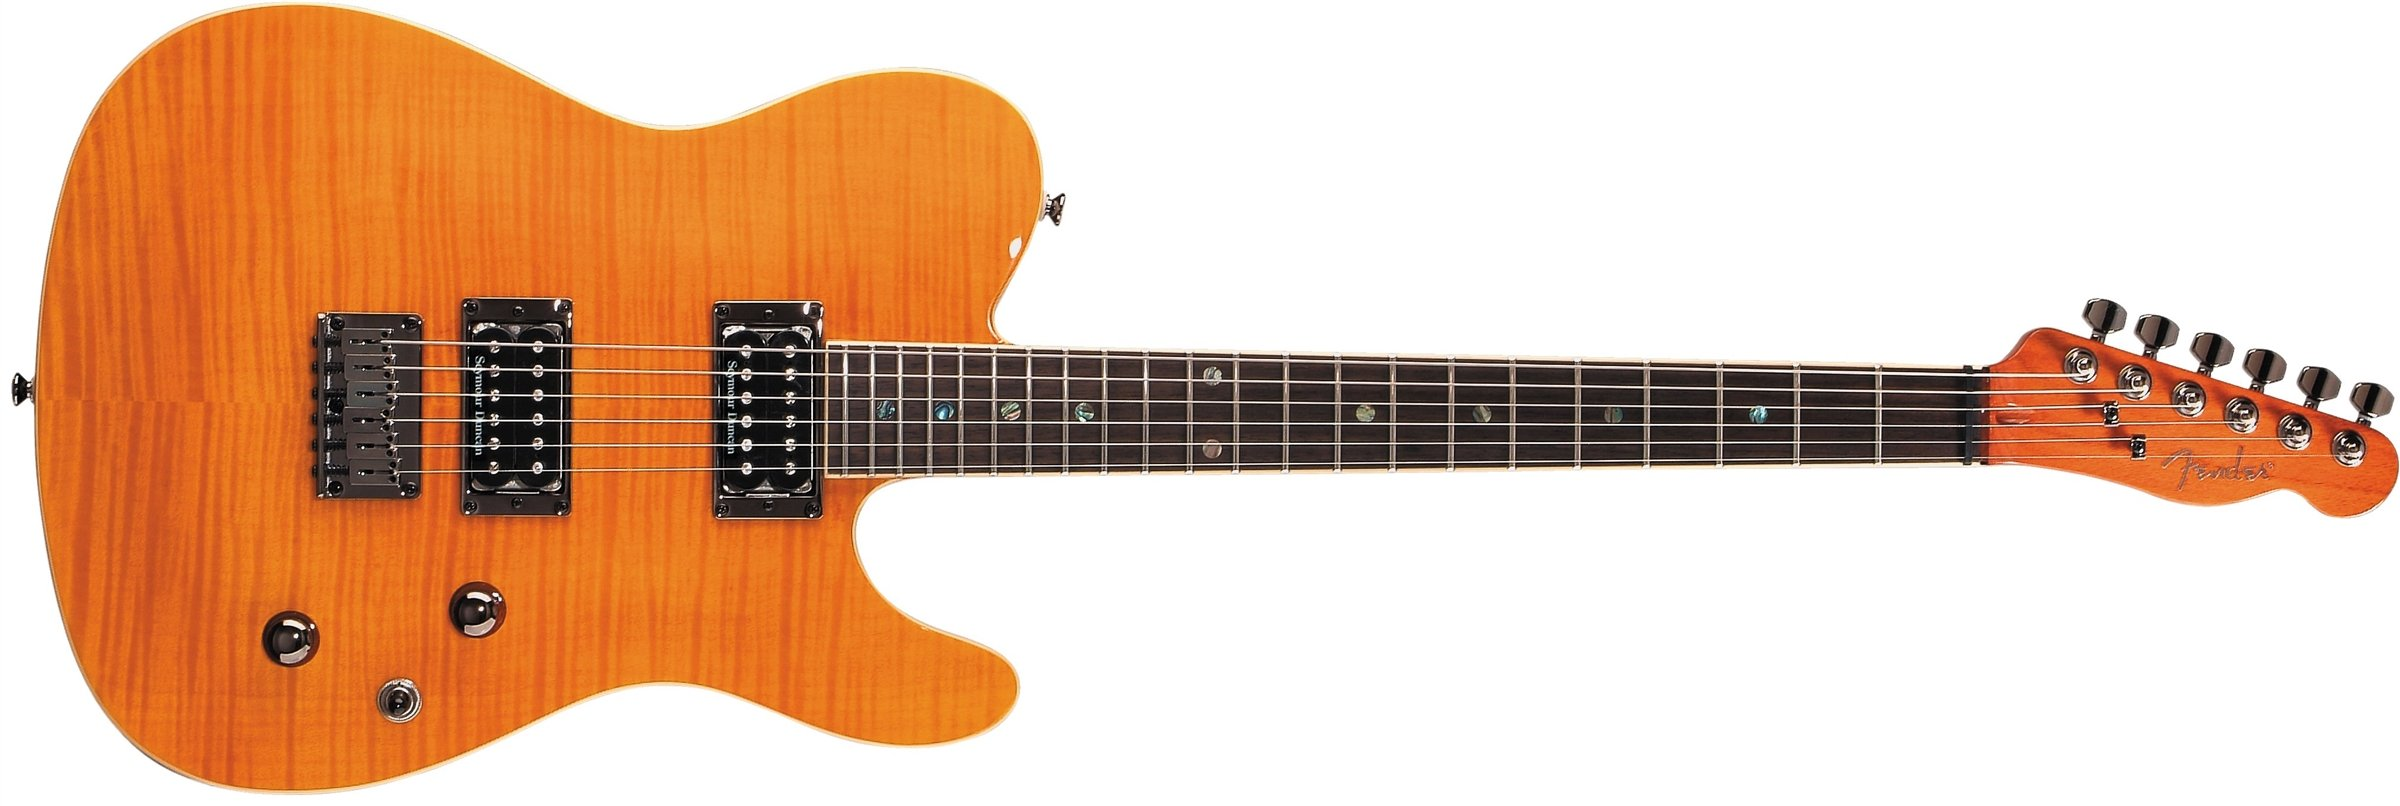 Fender Special Edition Custom Telecaster FMT HH Electric Guitar, Amber, Rosewood Fretboard